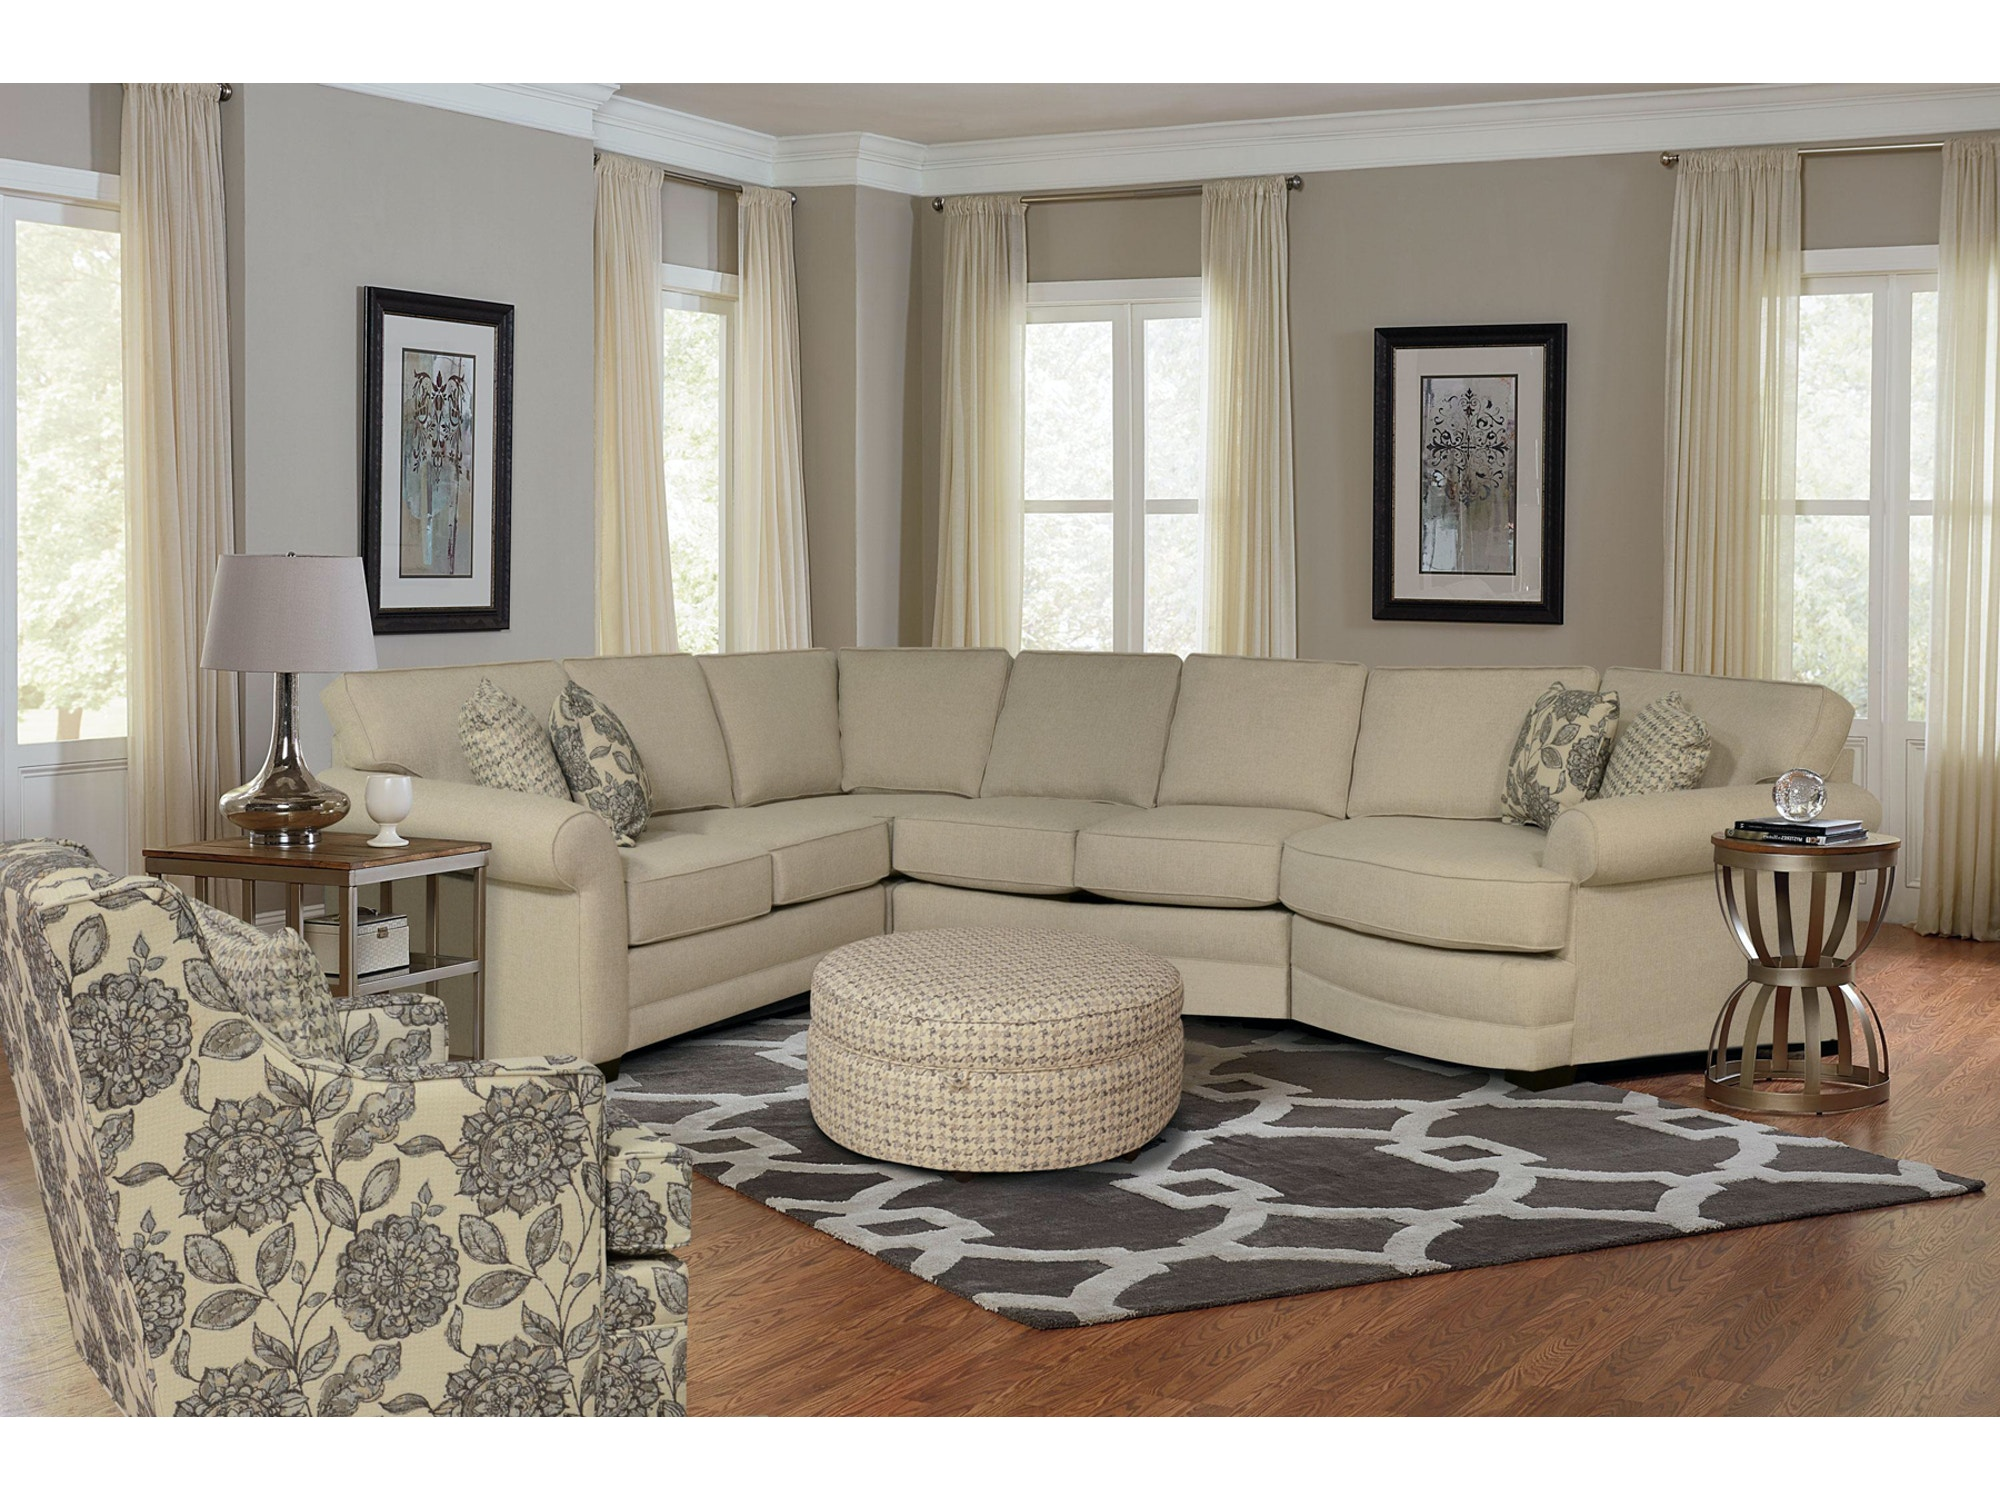 Living Room Dayton Ohio : Sectional Sofas Cincinnati Sofas Cincinnati Teachfamilies ...